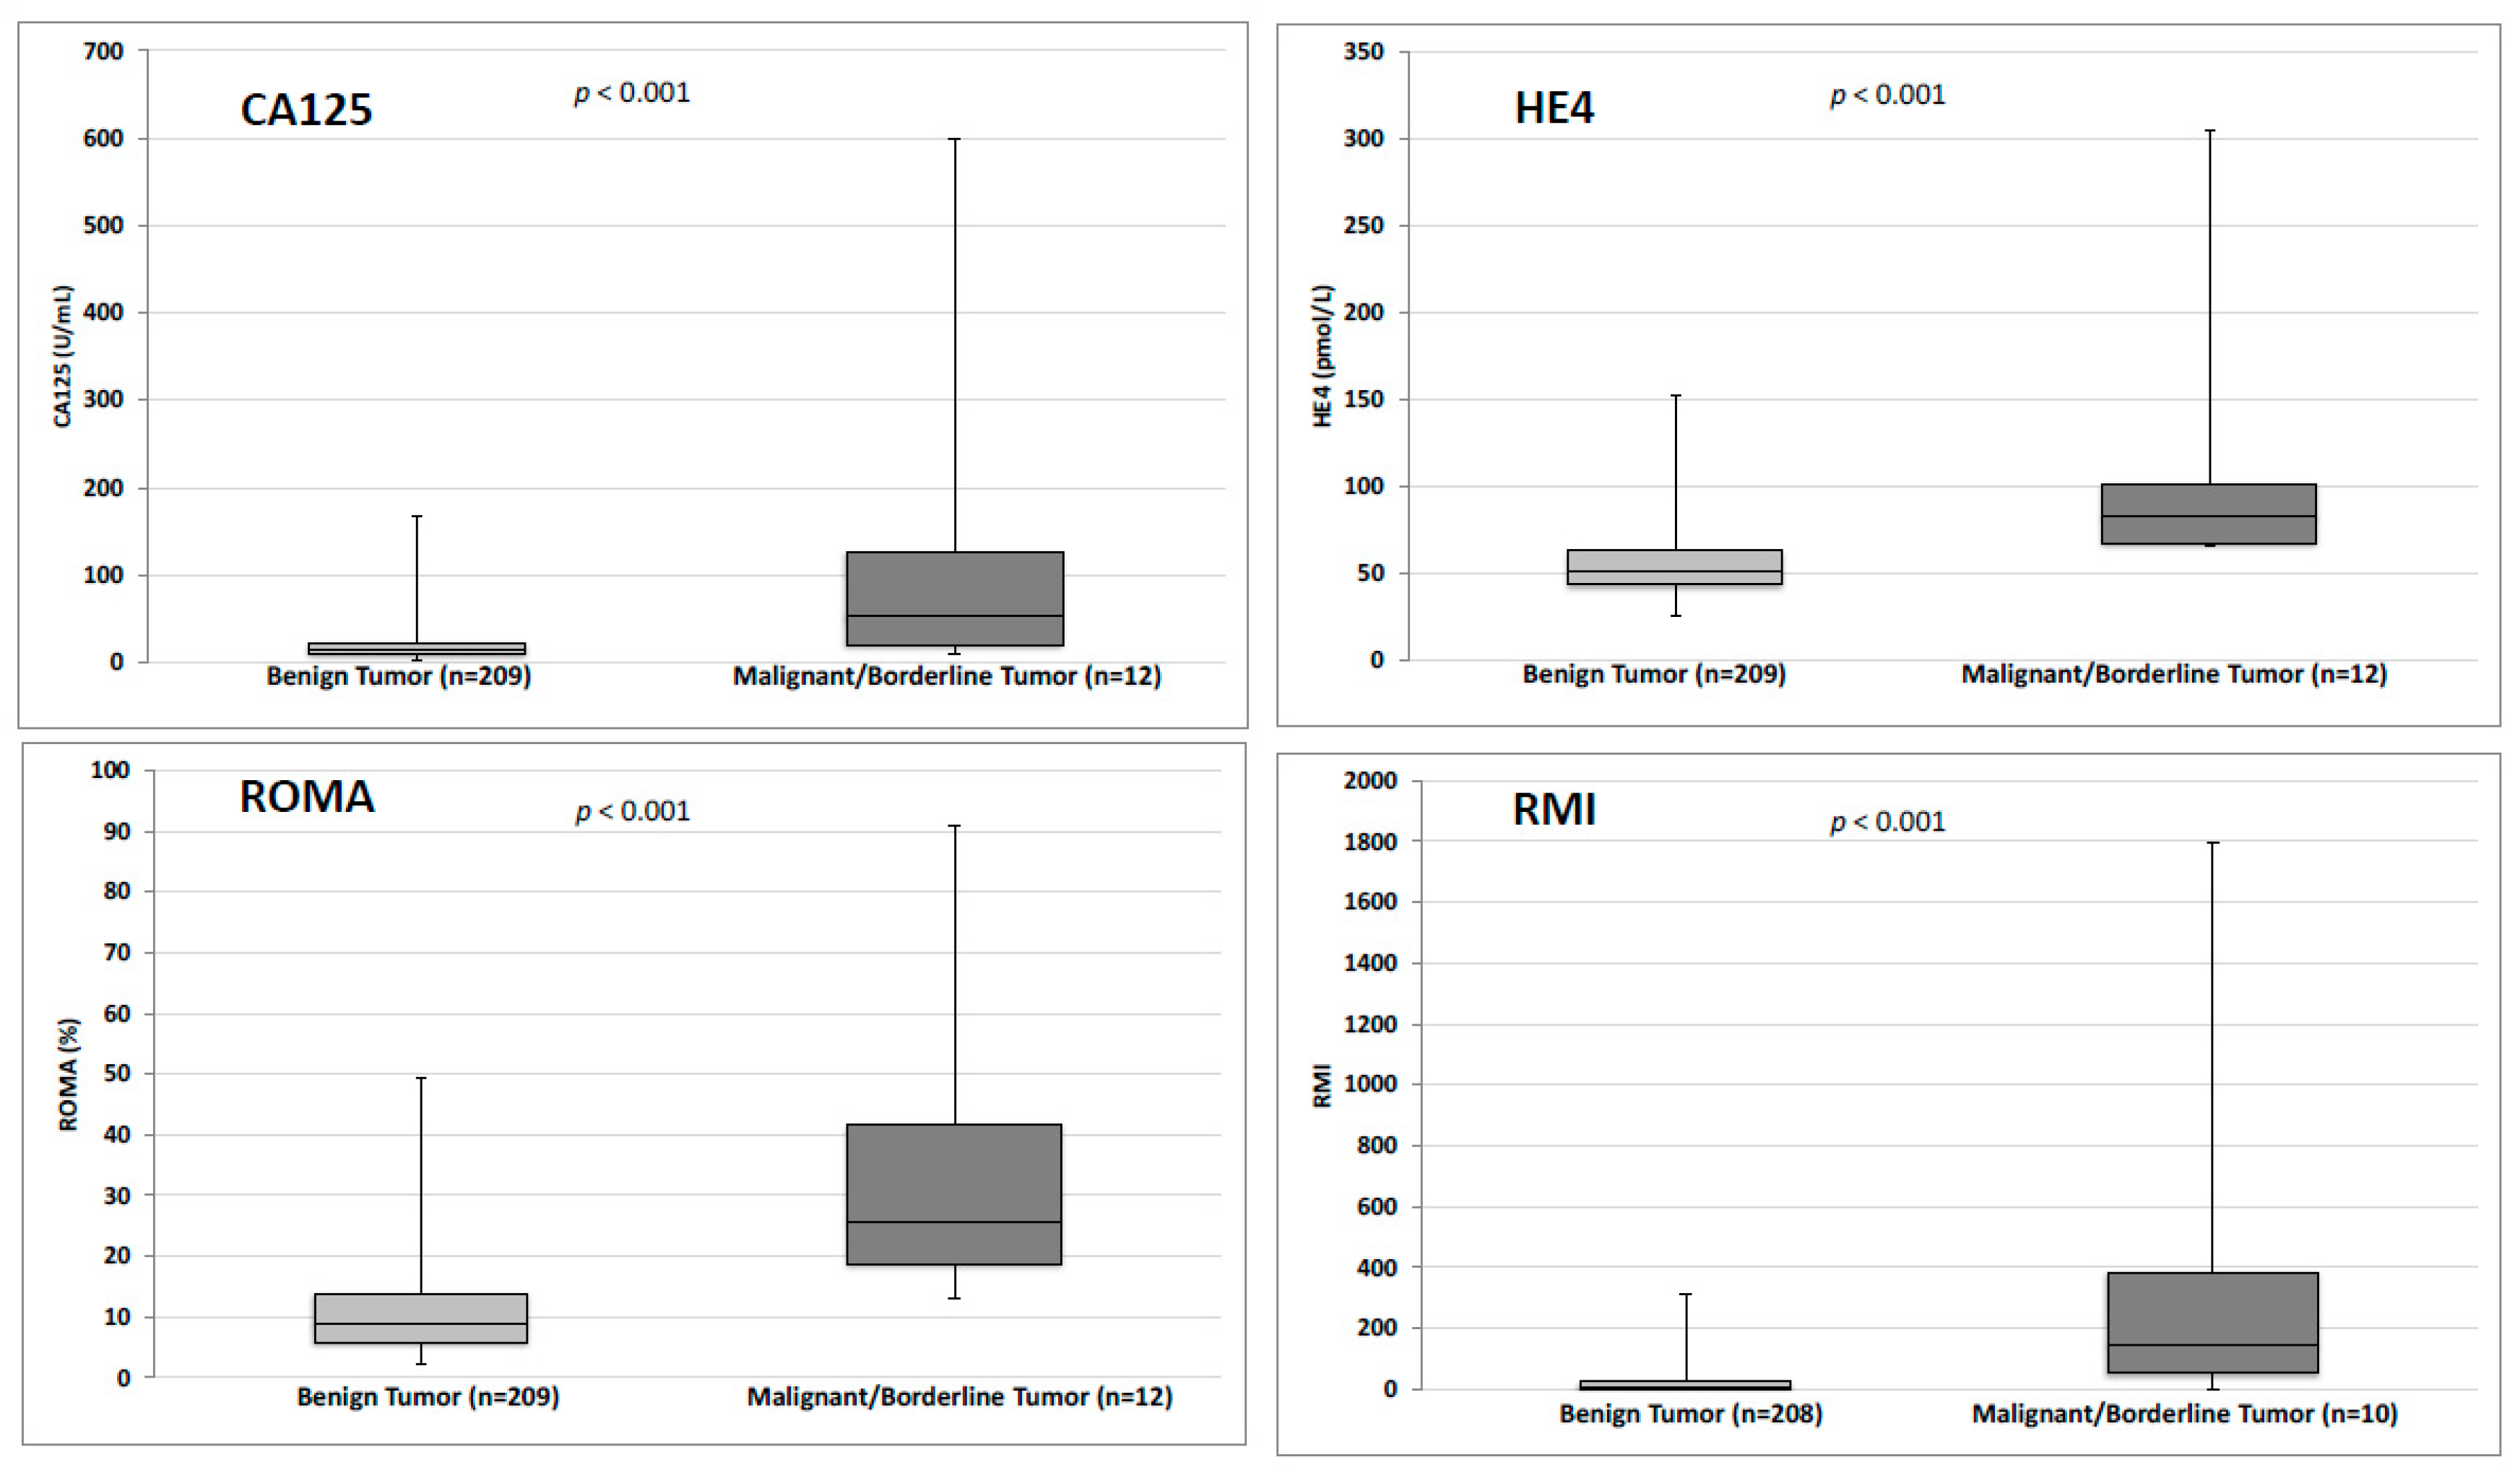 Jcm Free Full Text Efficacy Of He4 Ca125 Risk Of Malignancy Index And Risk Of Ovarian Malignancy Index To Detect Ovarian Cancer In Women With Presumed Benign Ovarian Tumours A Prospective